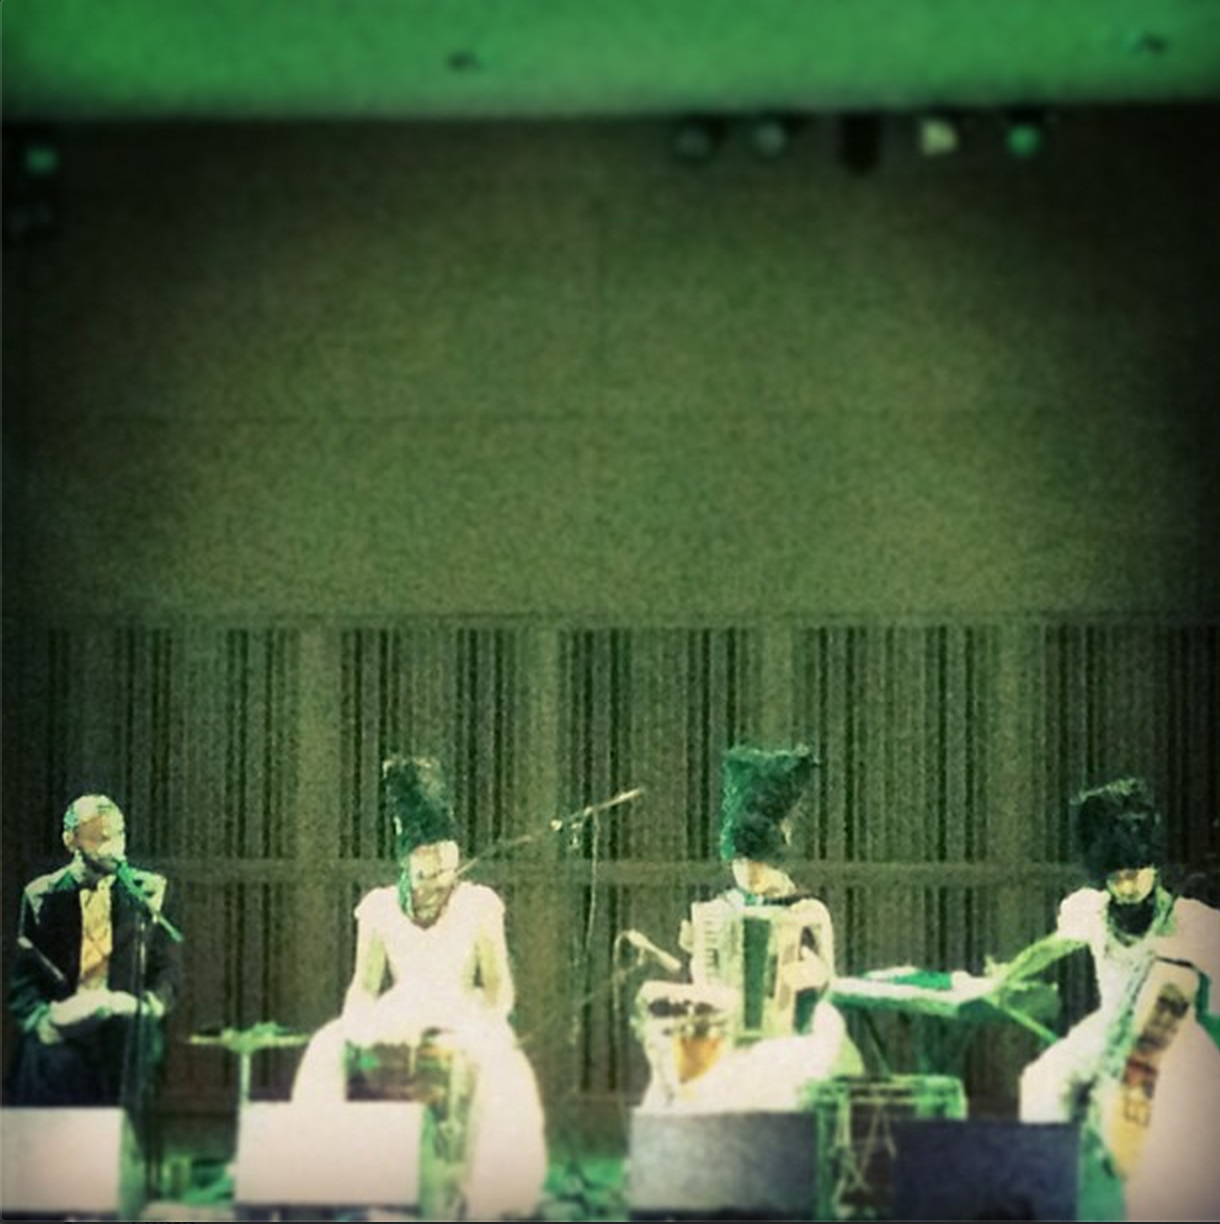 Dakha Brakha at CUNY's Graduate Center in New York, September 19, 2013